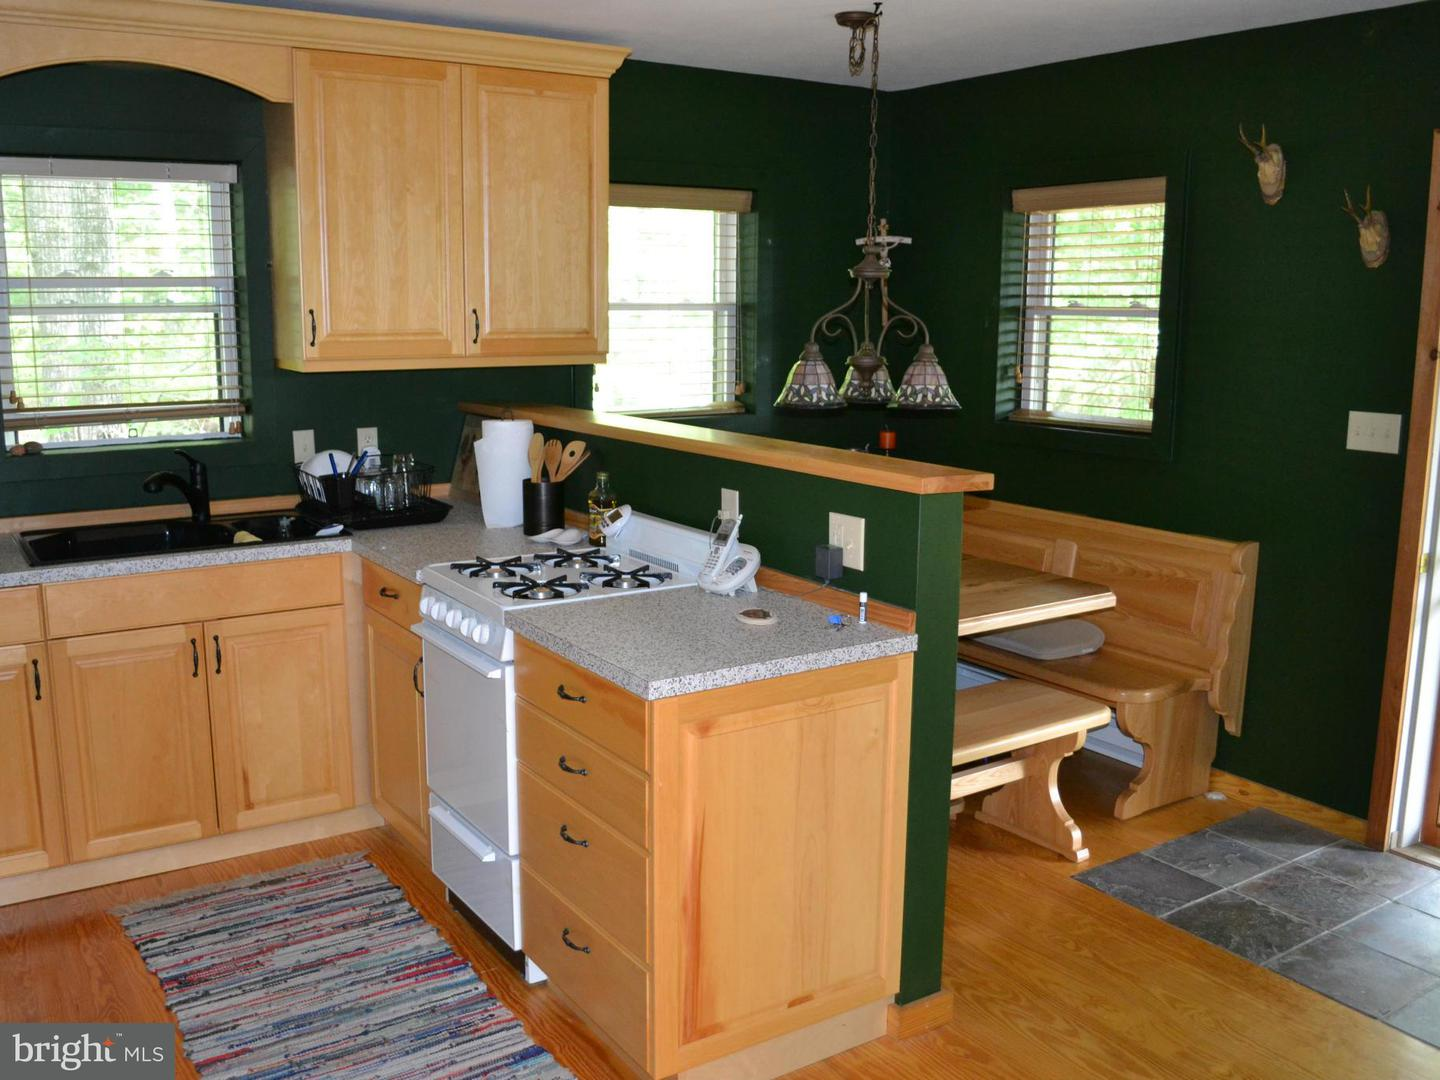 Additional photo for property listing at 232 Hawks Ridge Rd  Franklin, West Virginia 26807 United States